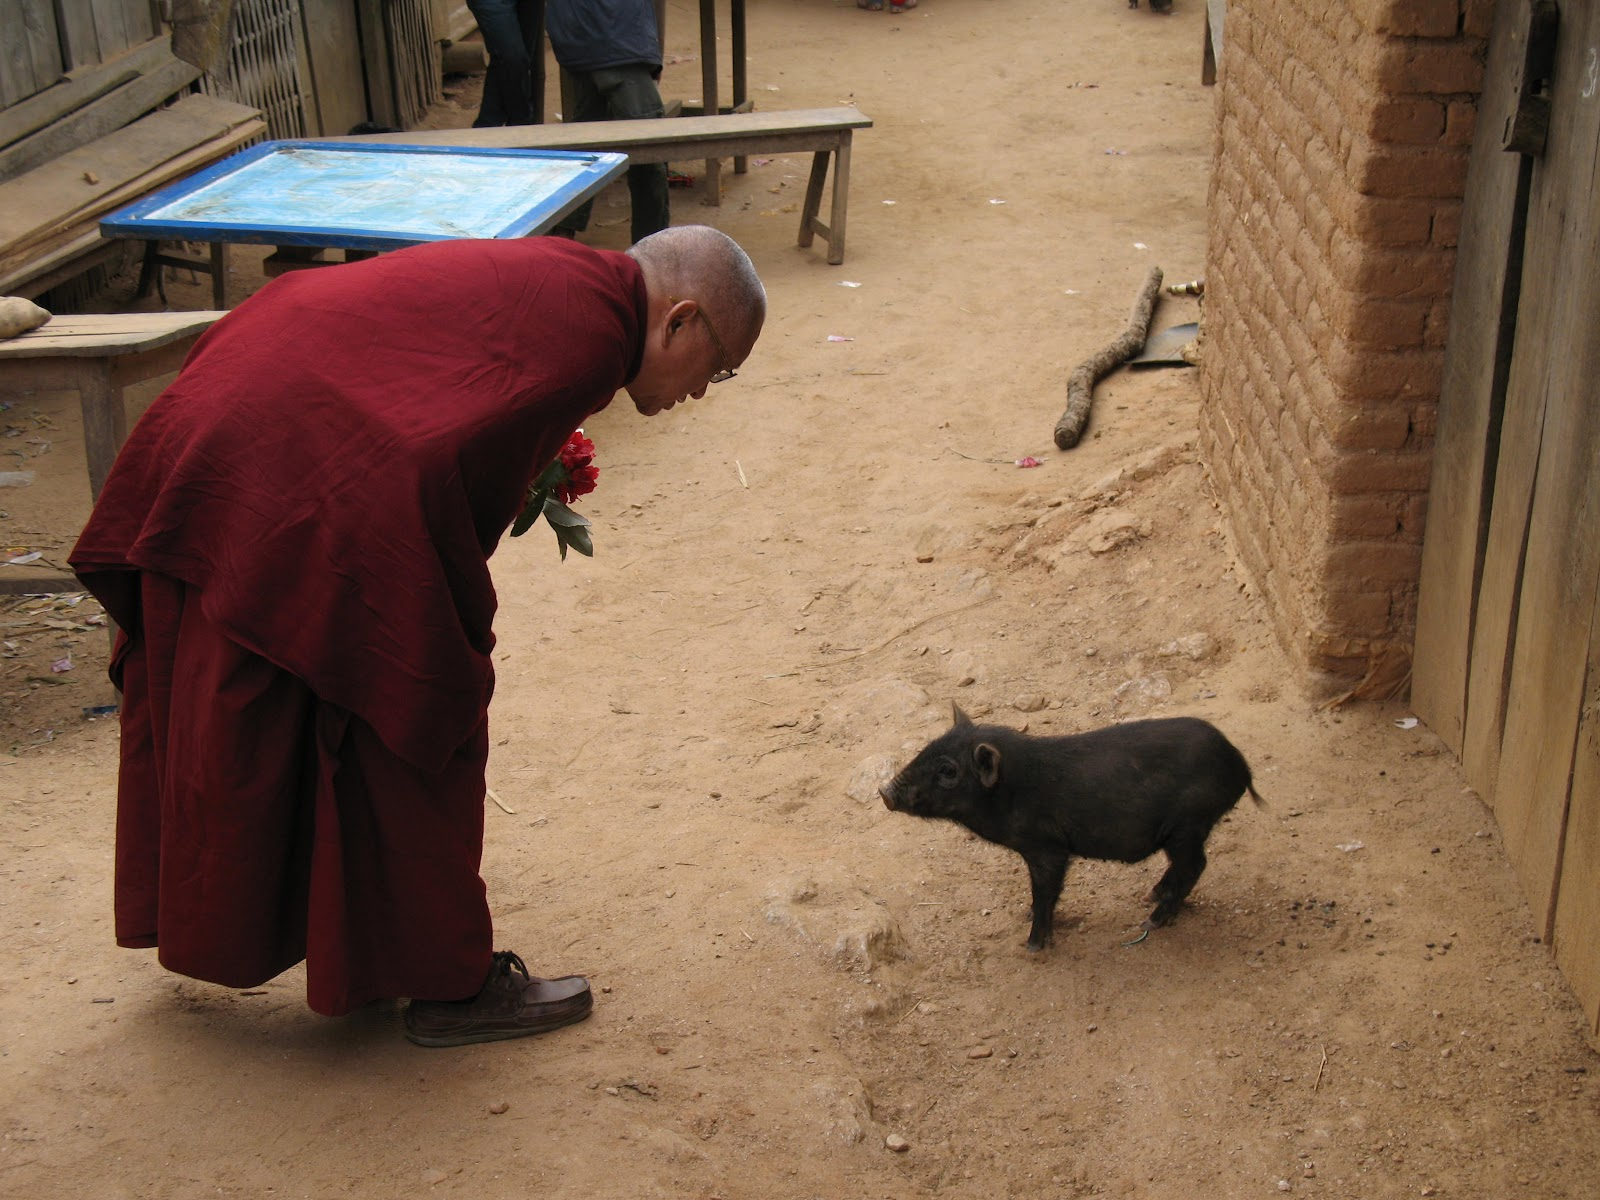 reciting mantras when meeting any animal